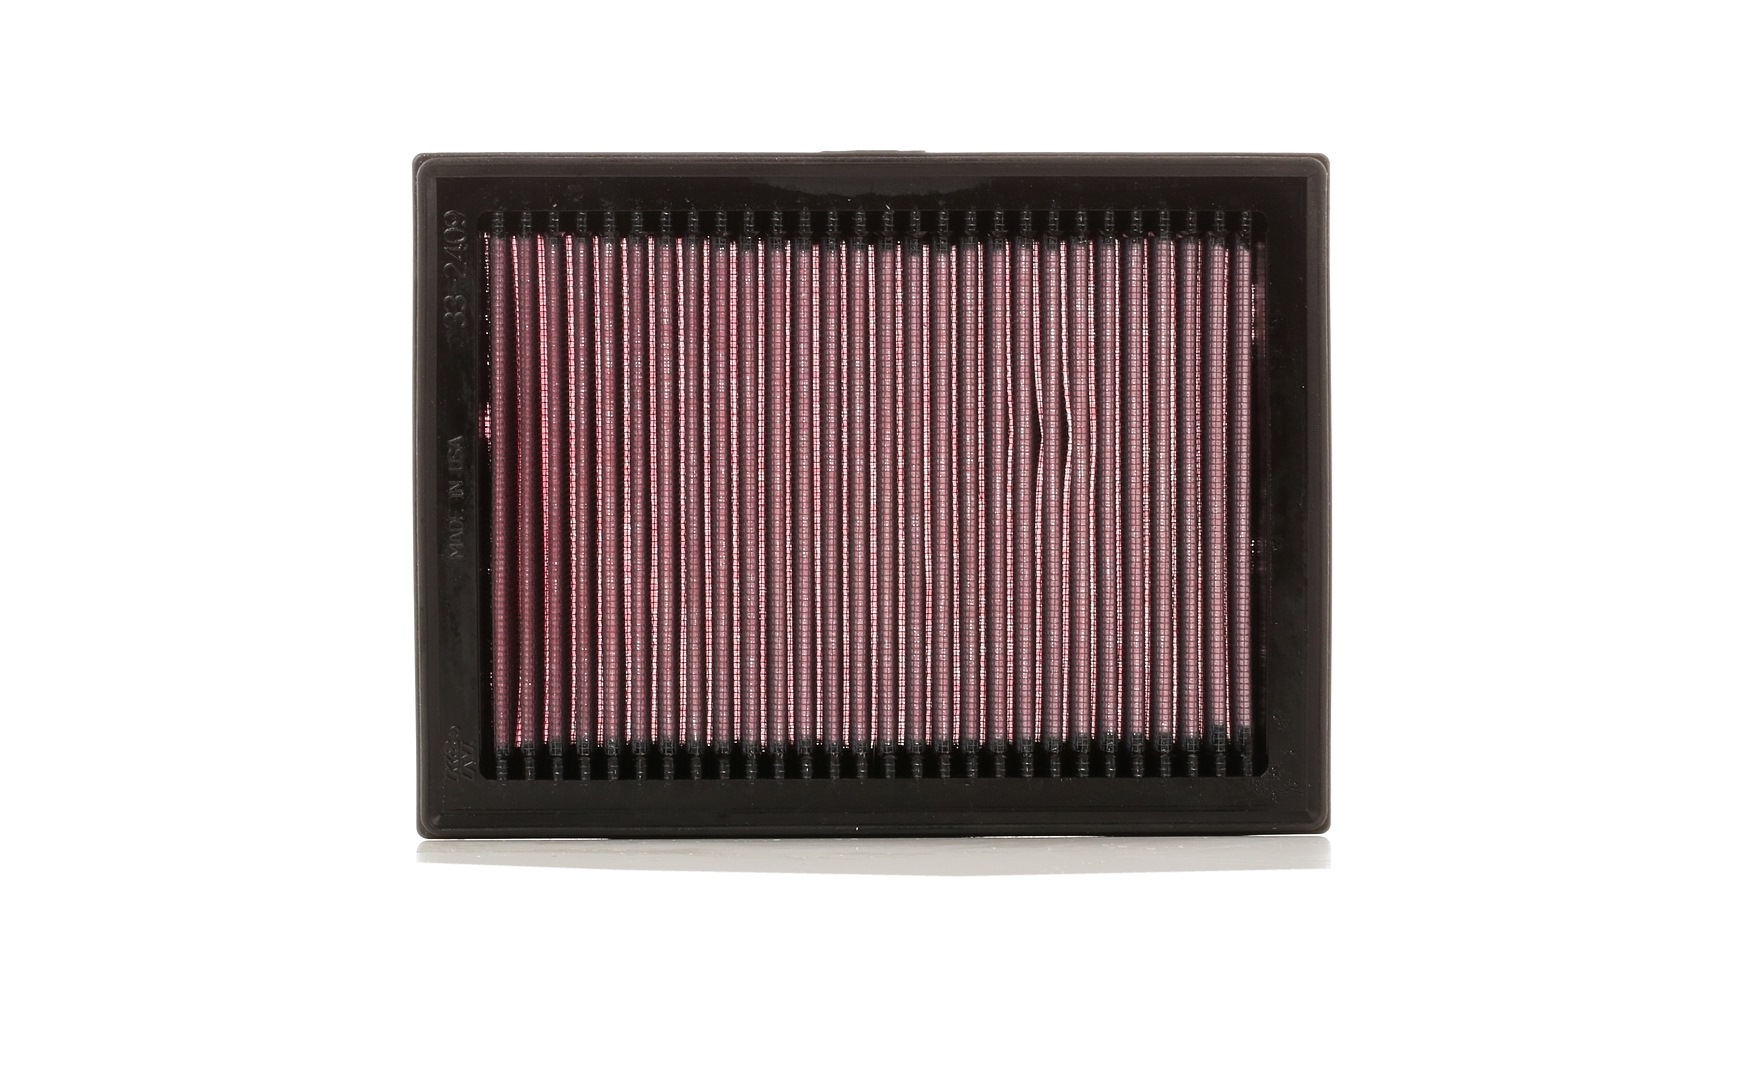 Air Filter K&N Filters 33-2409 - find, compare the prices and save!